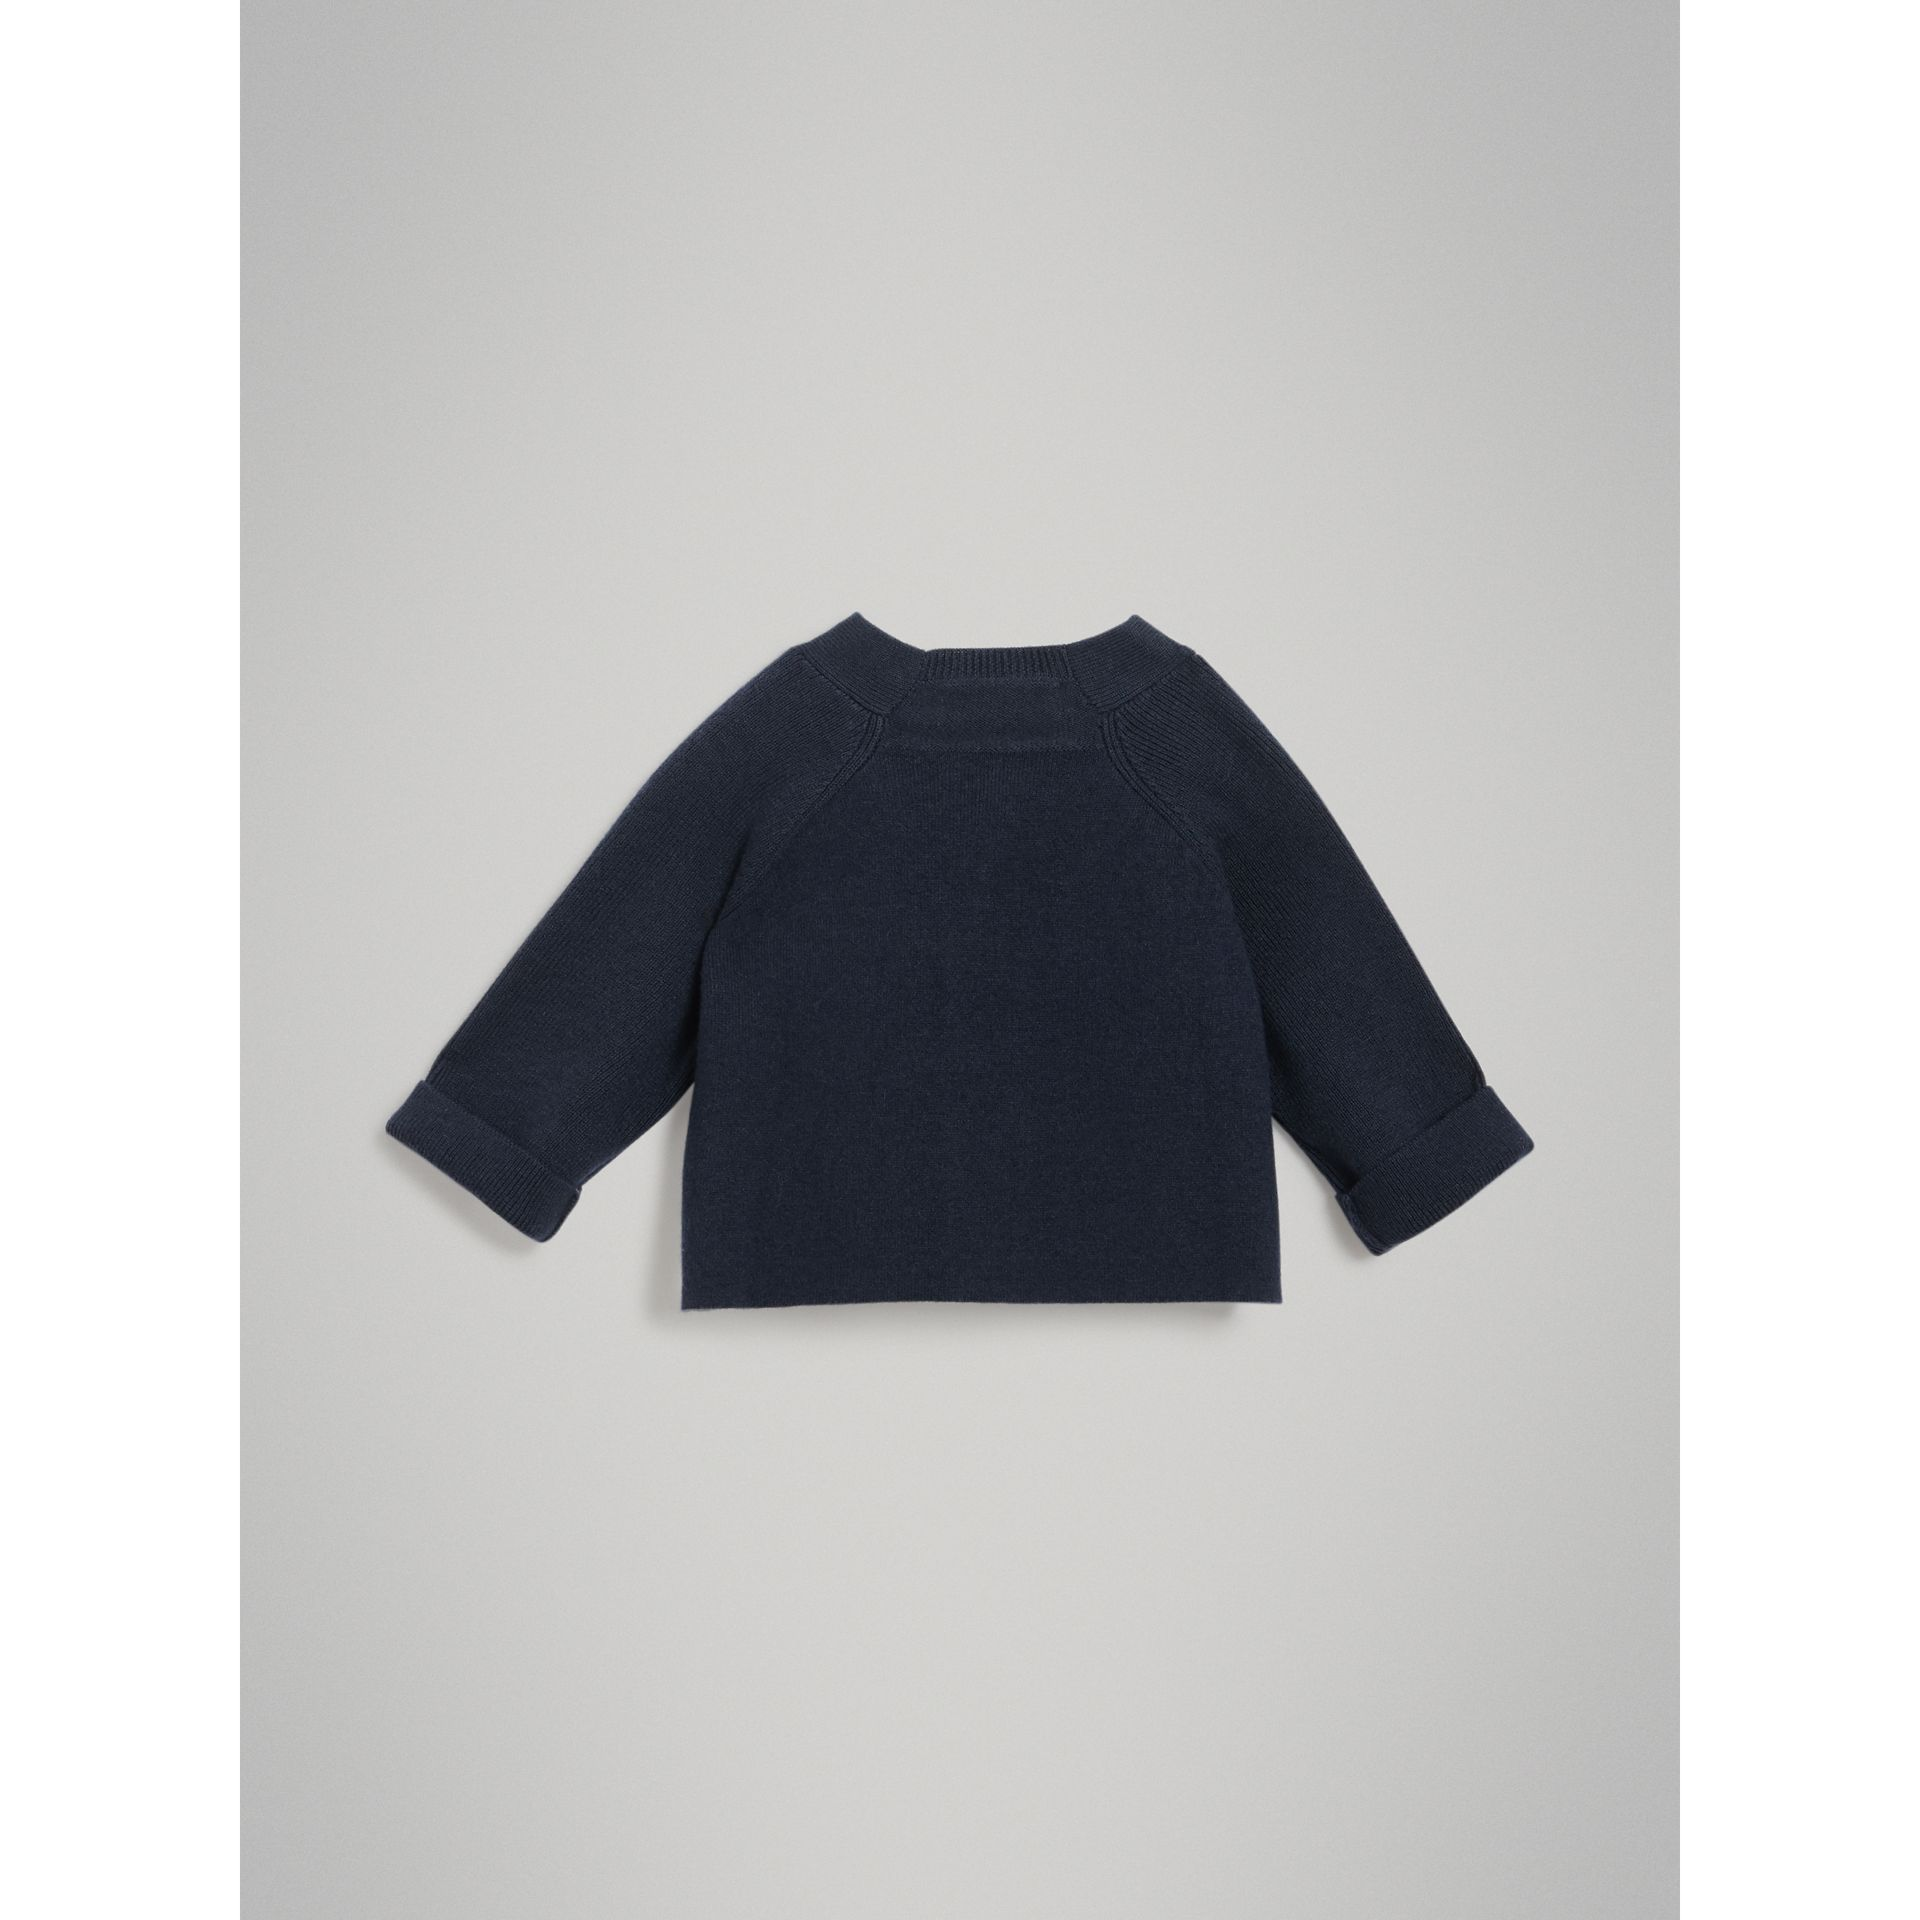 Cashmere Cotton Knit Cardigan in Navy - Children | Burberry - gallery image 3